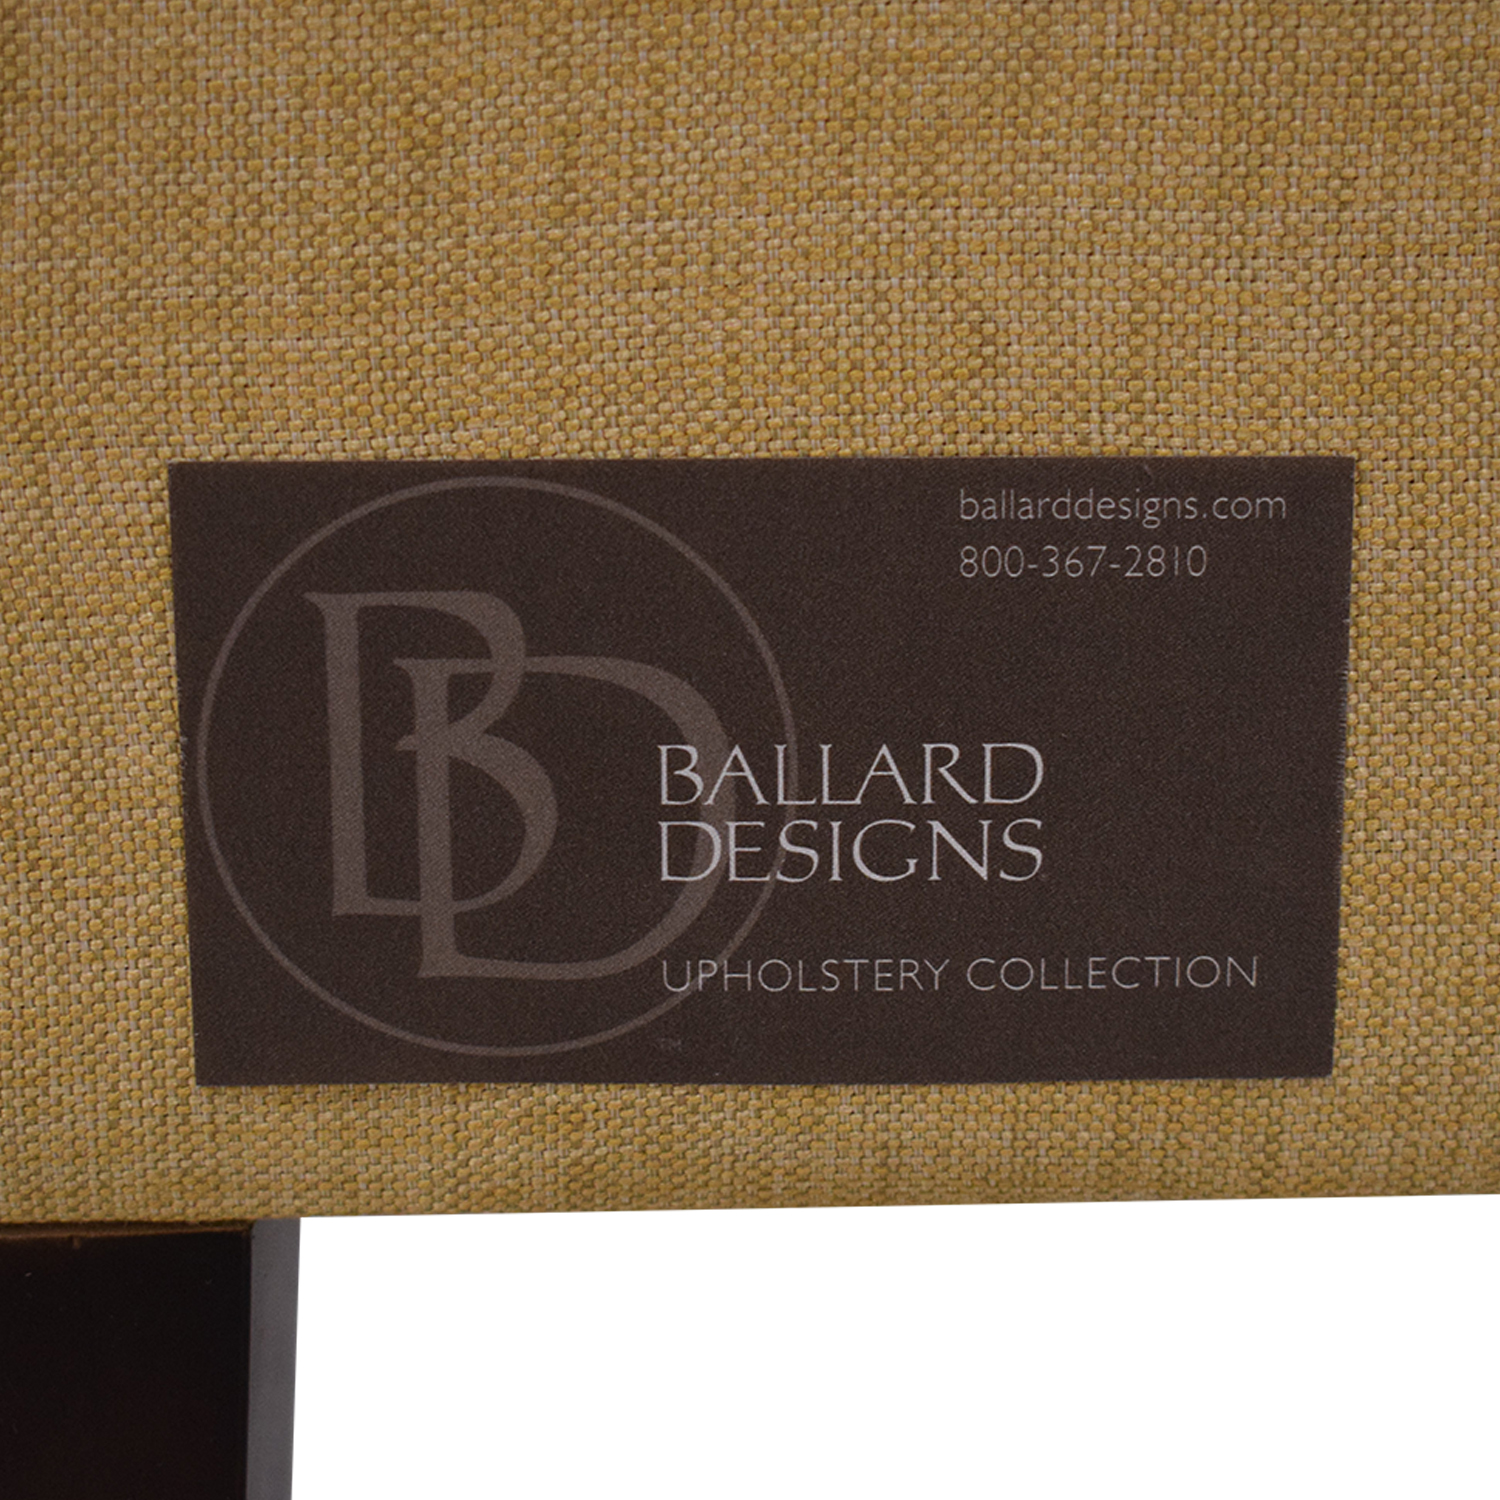 Ballard Designs Ballard Designs Squire Untufted Bed coupon